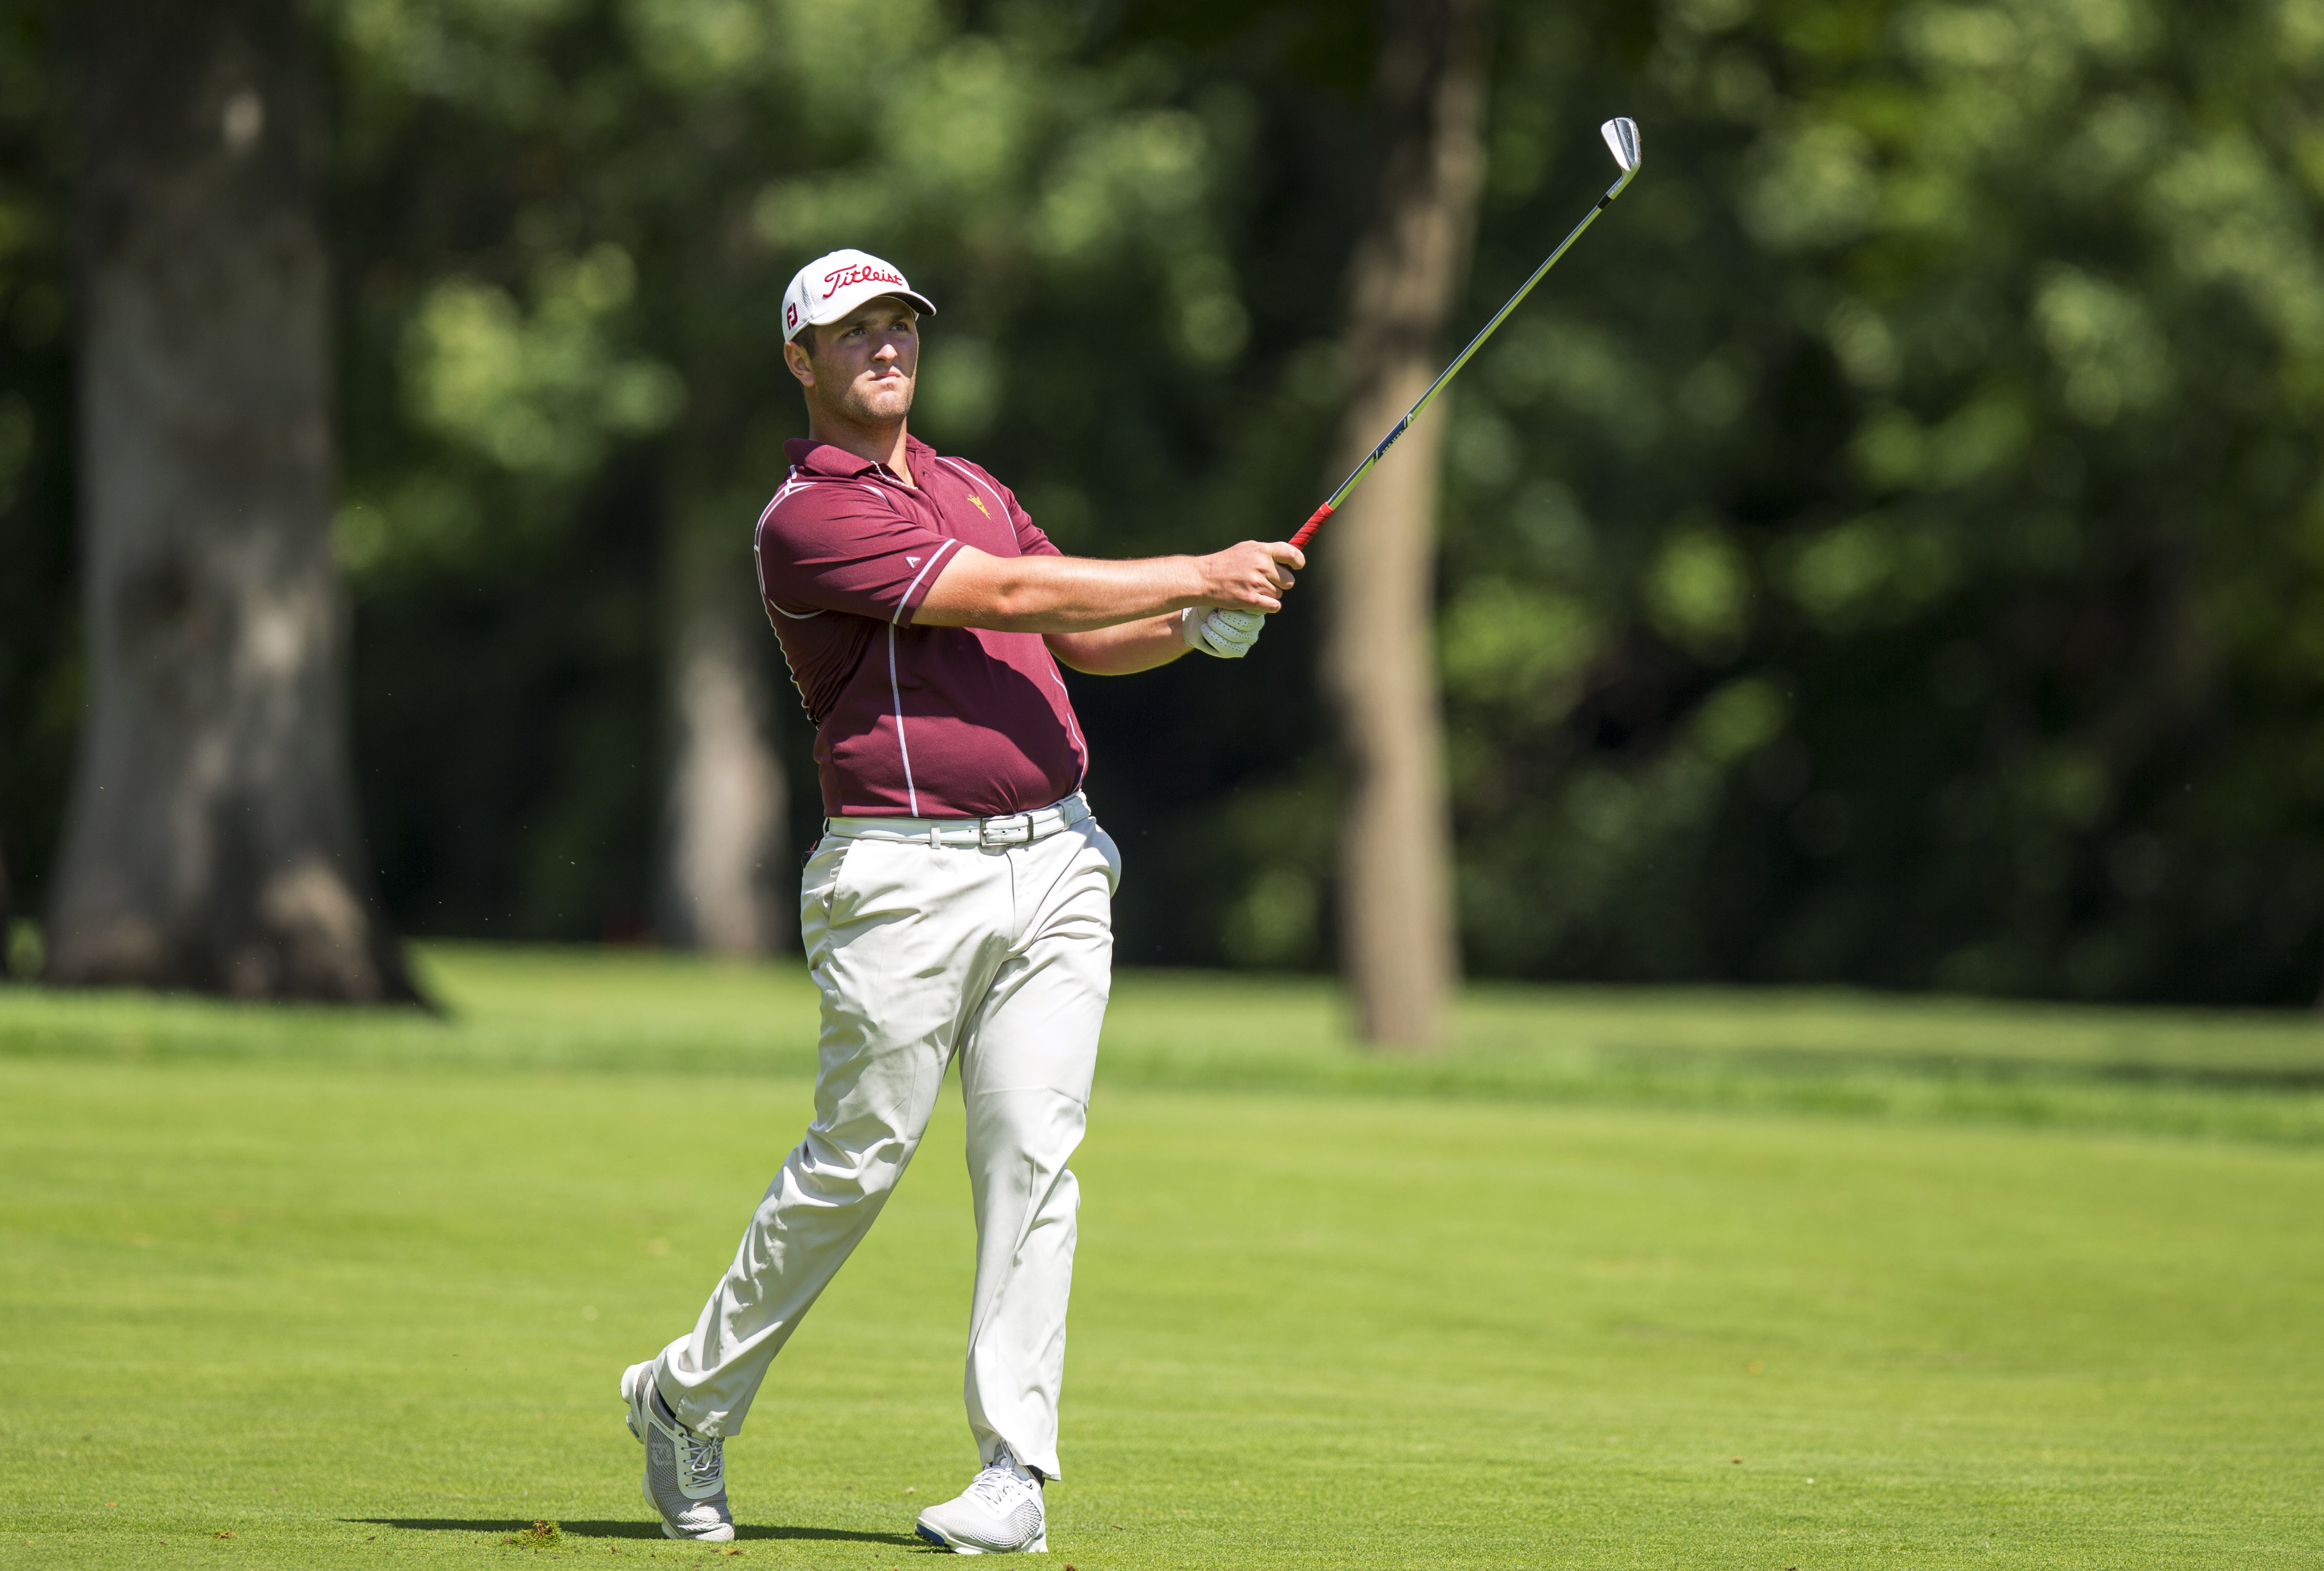 In a photo provided by the USGA, Jon Rahm watches his second shot on the third hole during a match-play found in the U.S. Amateur golf tournament at Olympia Fields Country Club in Olympia Fields, Ill. on Thursday, Aug. 20, 2015. (John Mummert/USGA via AP)